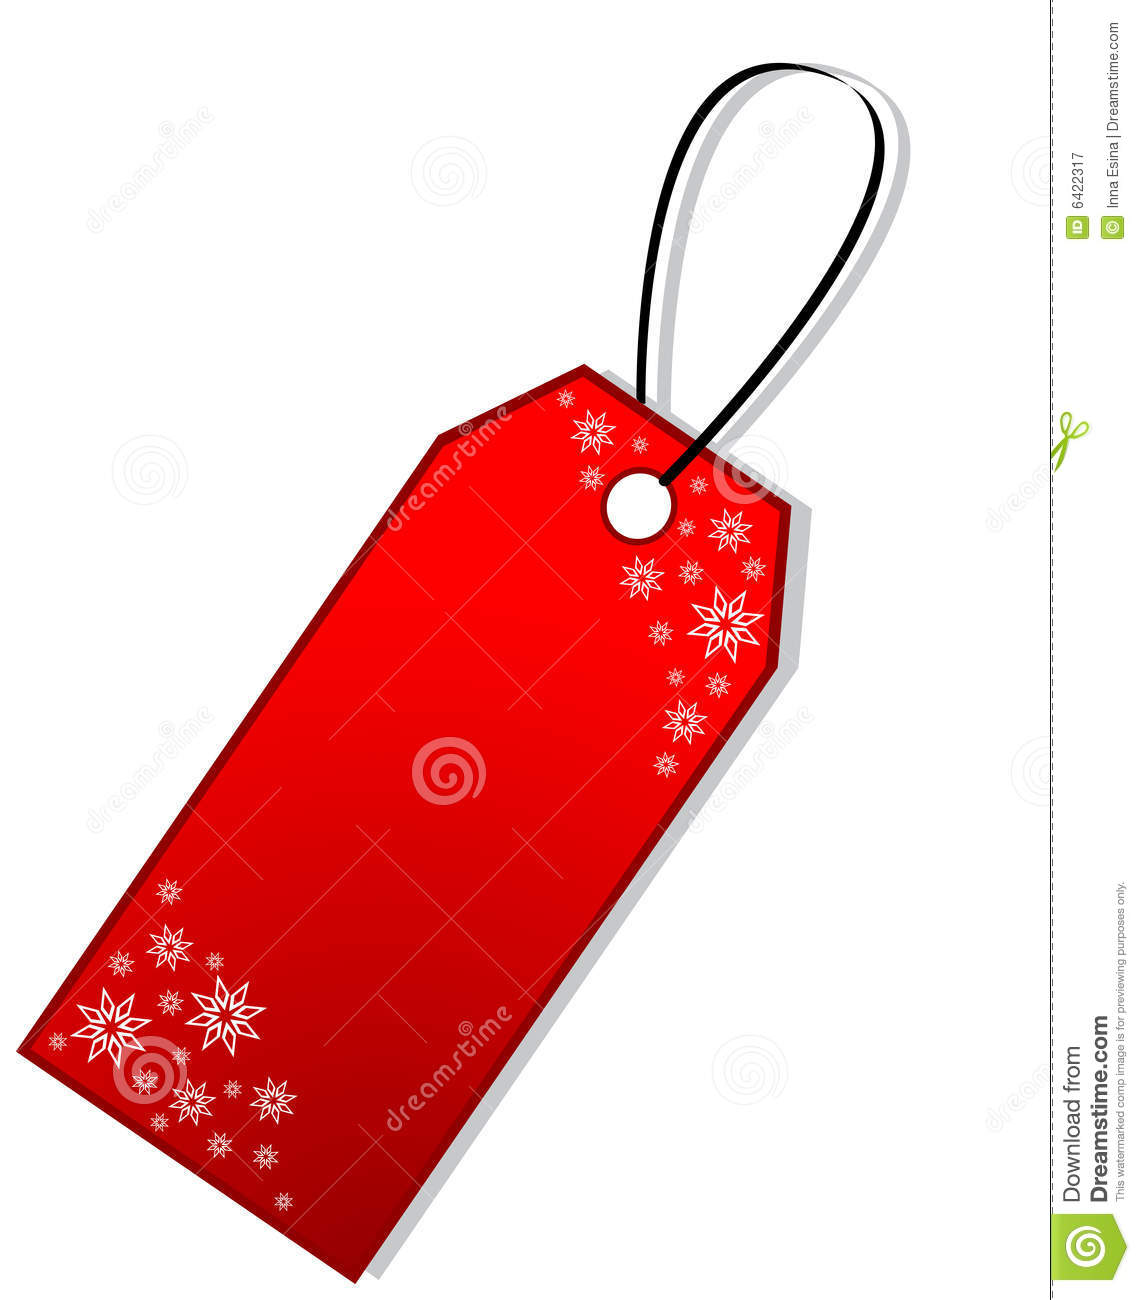 Free Christmas Gift Tag Clipart.